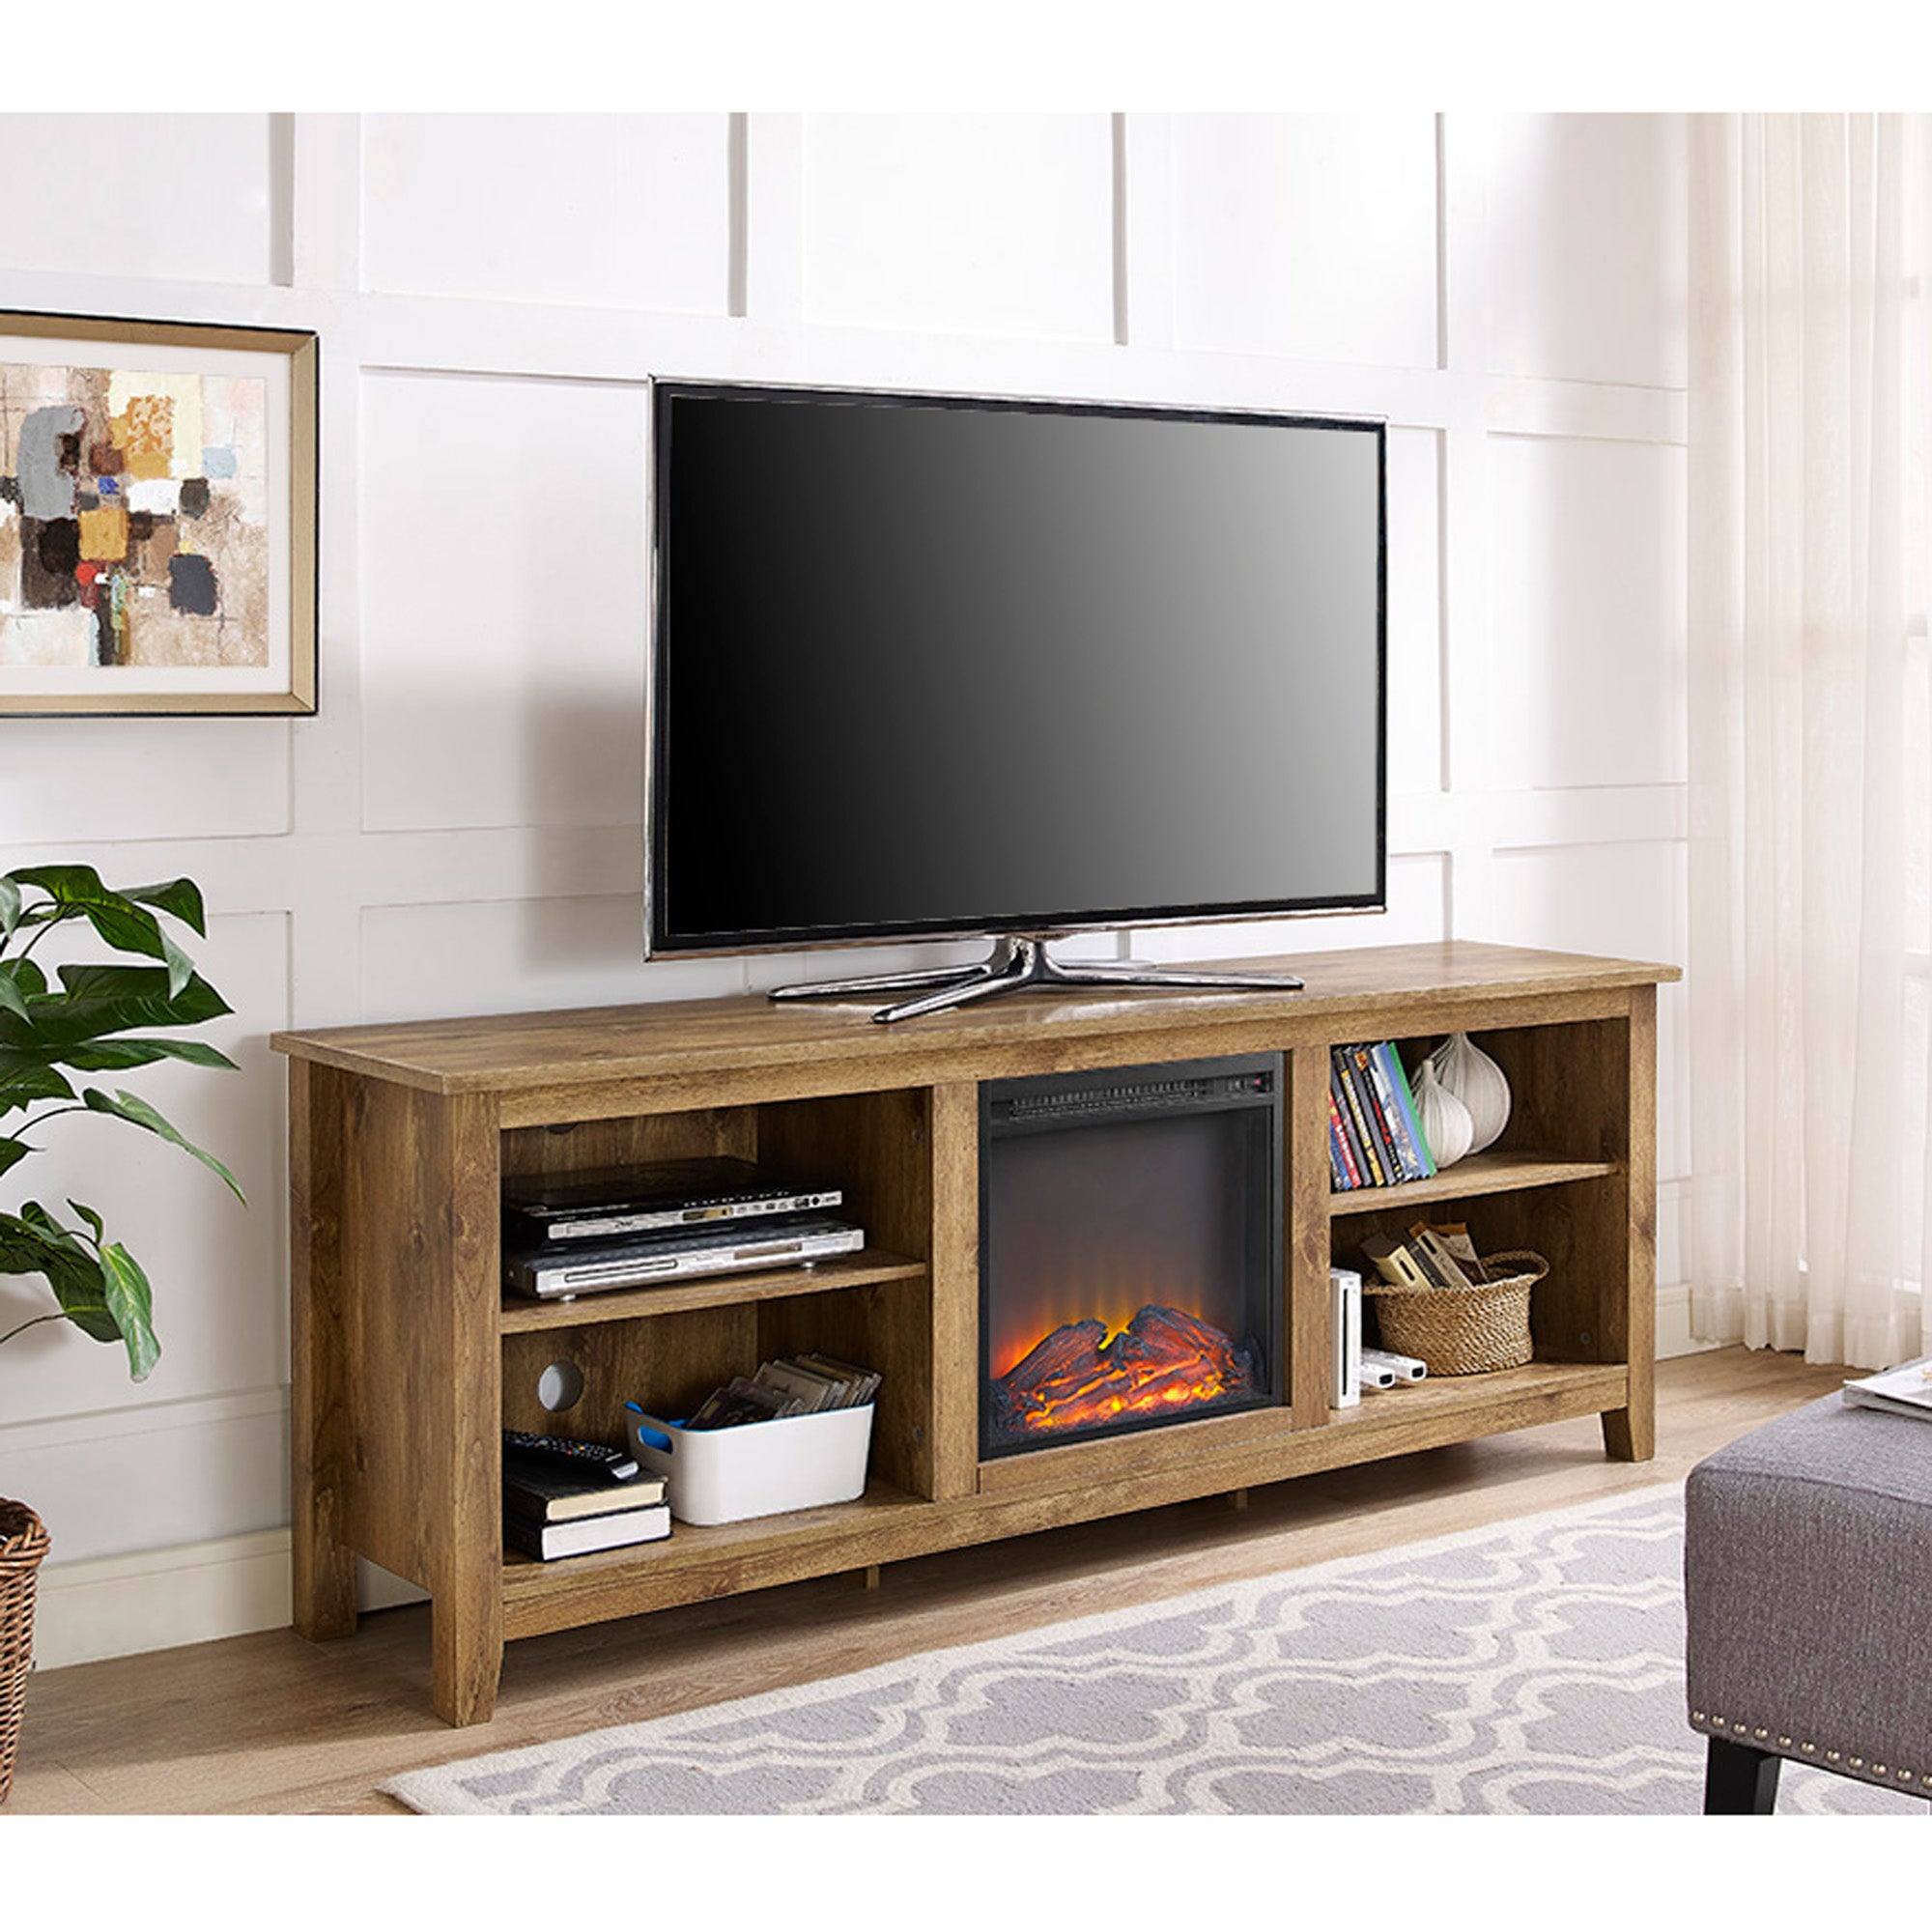 "70"" Wood Media TV Stand Console with Fireplace - Barnwood"